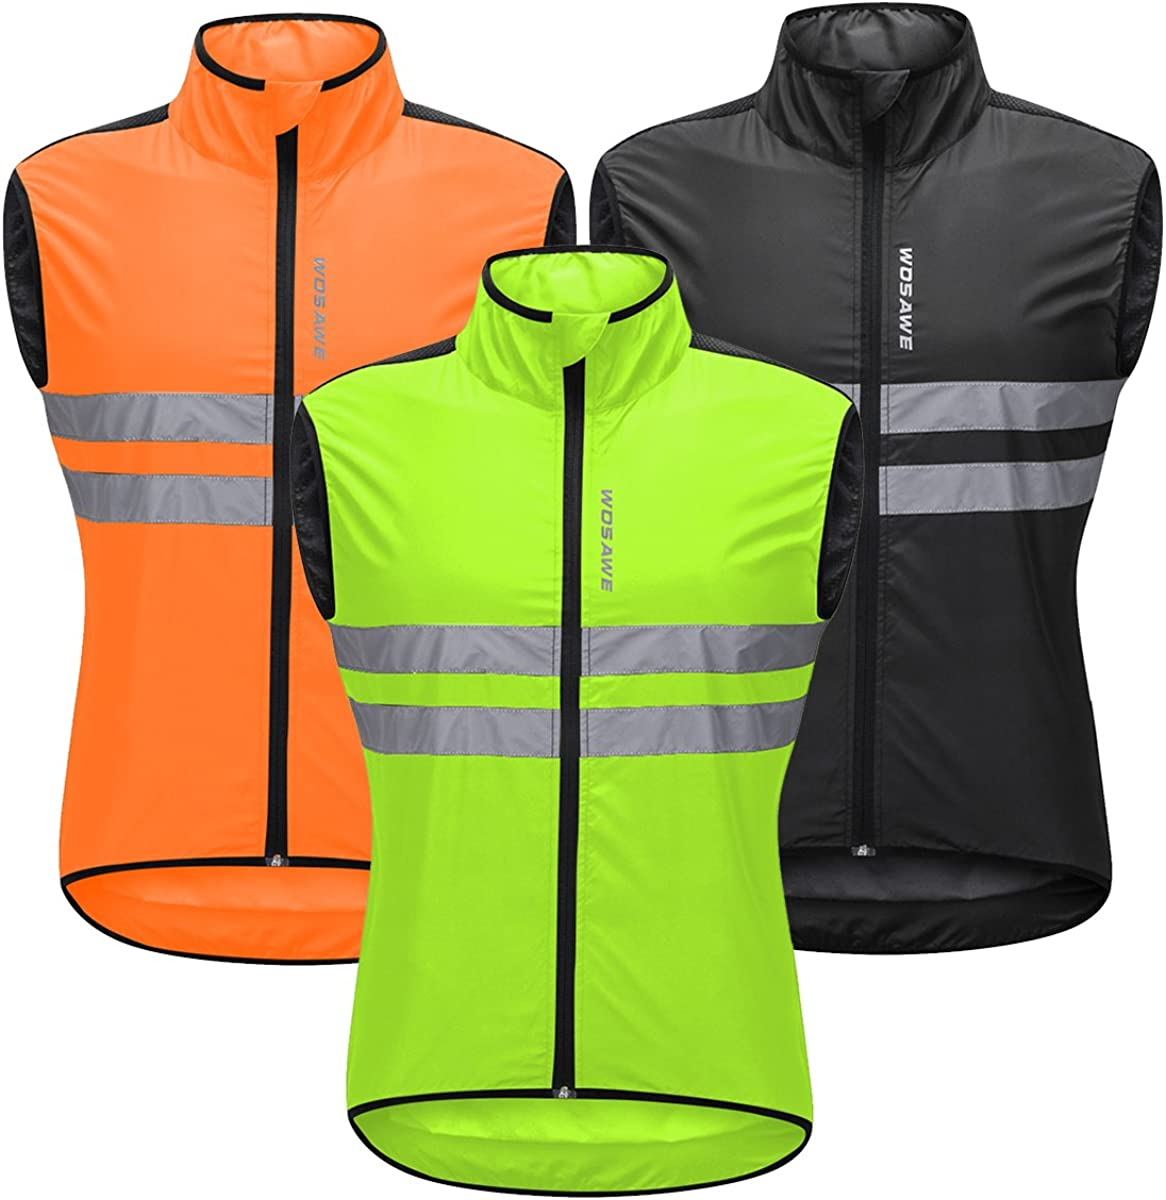 2XL Green WOSAWE Mens High Visibility Cycling Wind Vest Sleeveless Reflective Bicycle Gilet